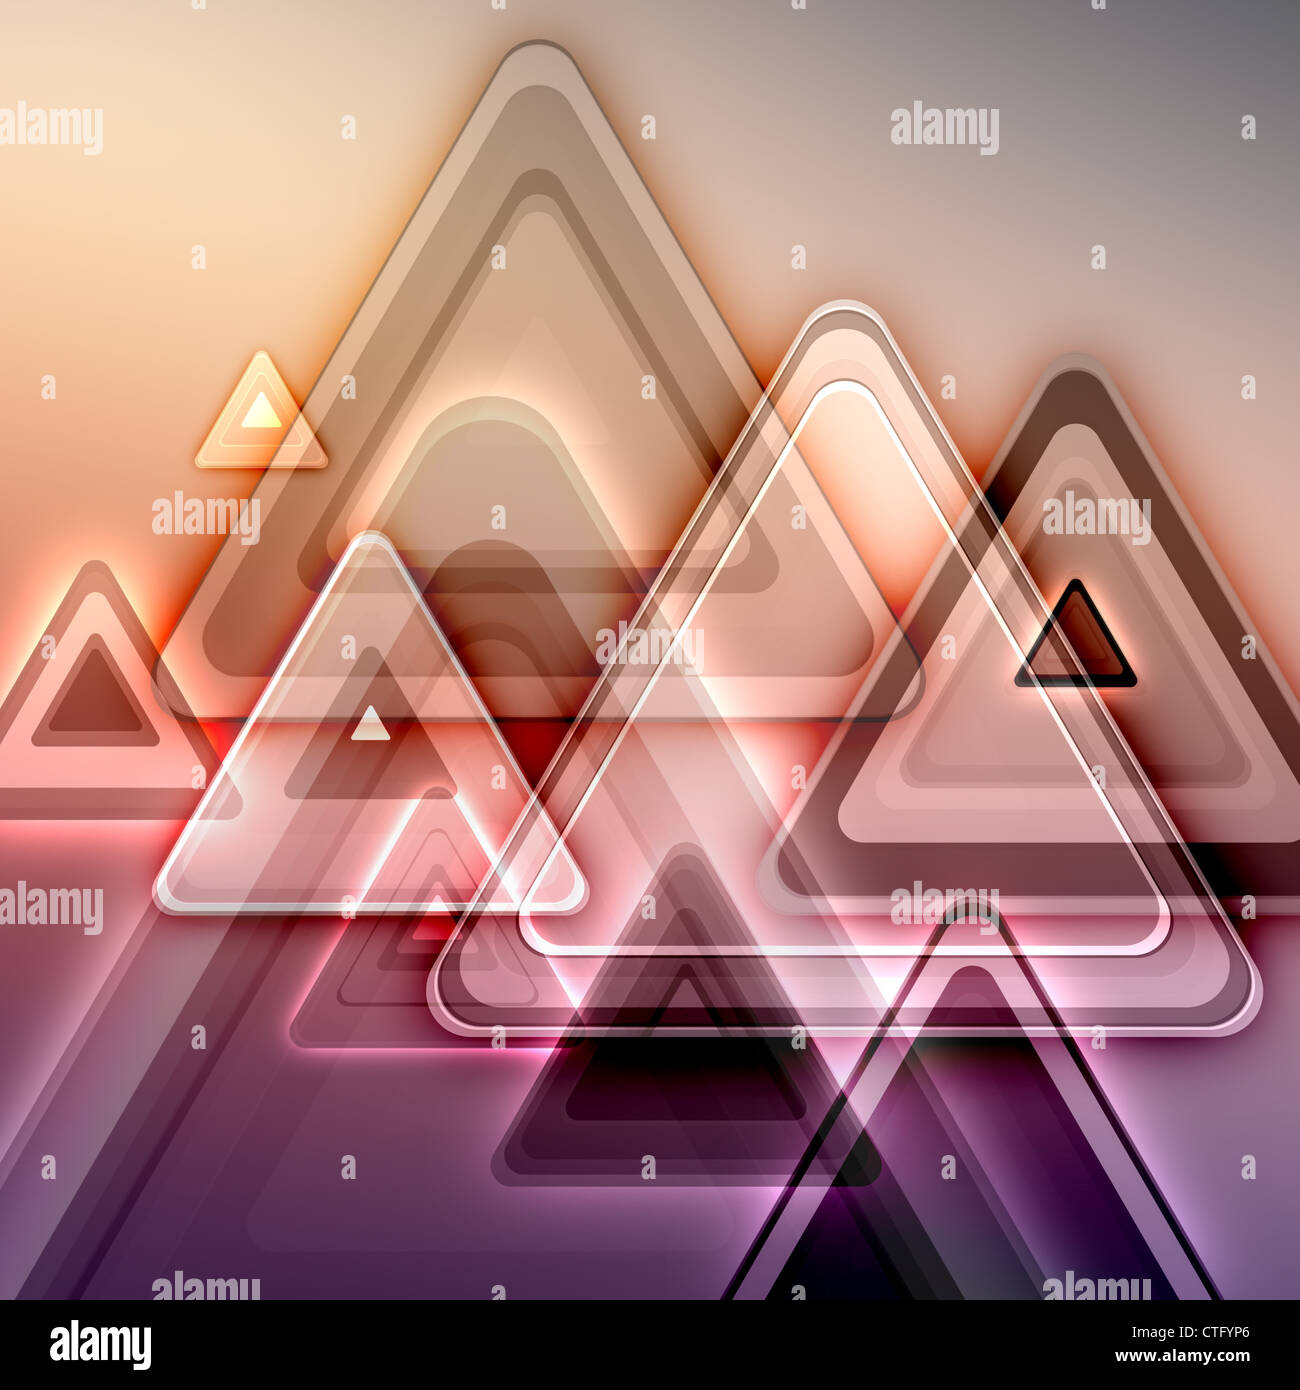 abstract futuristic background - Stock Image